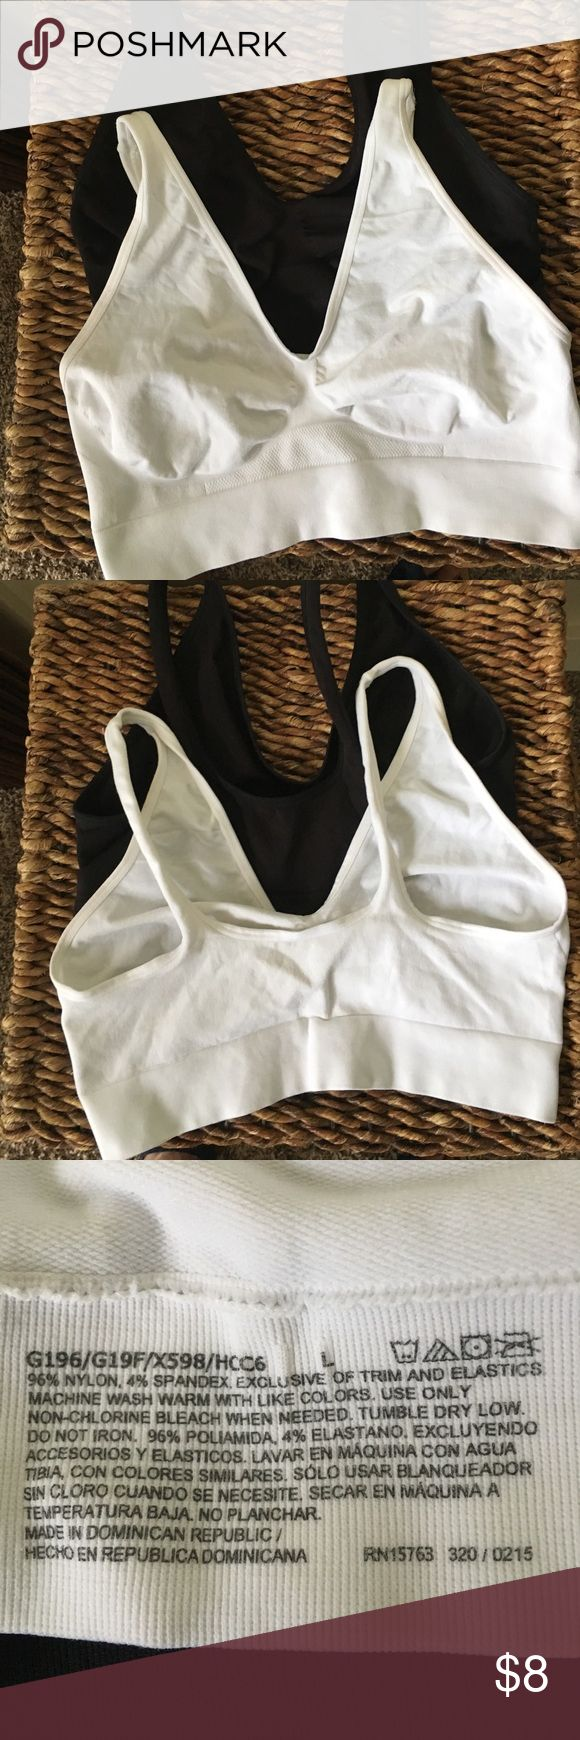 Black & white sports bras Black and white large sports bras Intimates & Sleepwear Bras